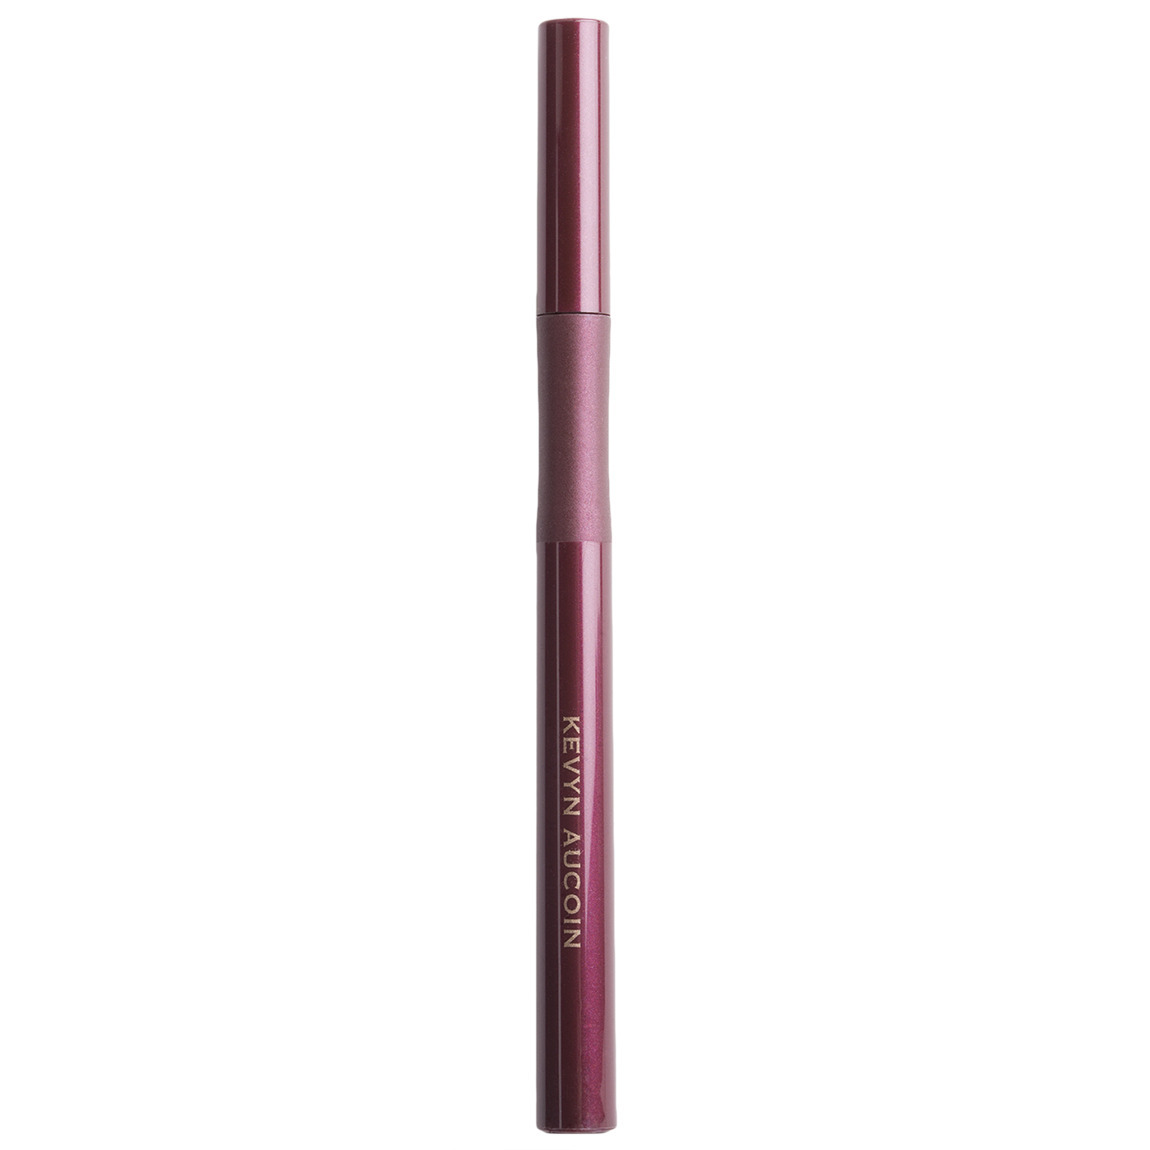 Kevyn Aucoin The Precision Liquid Liner product smear.